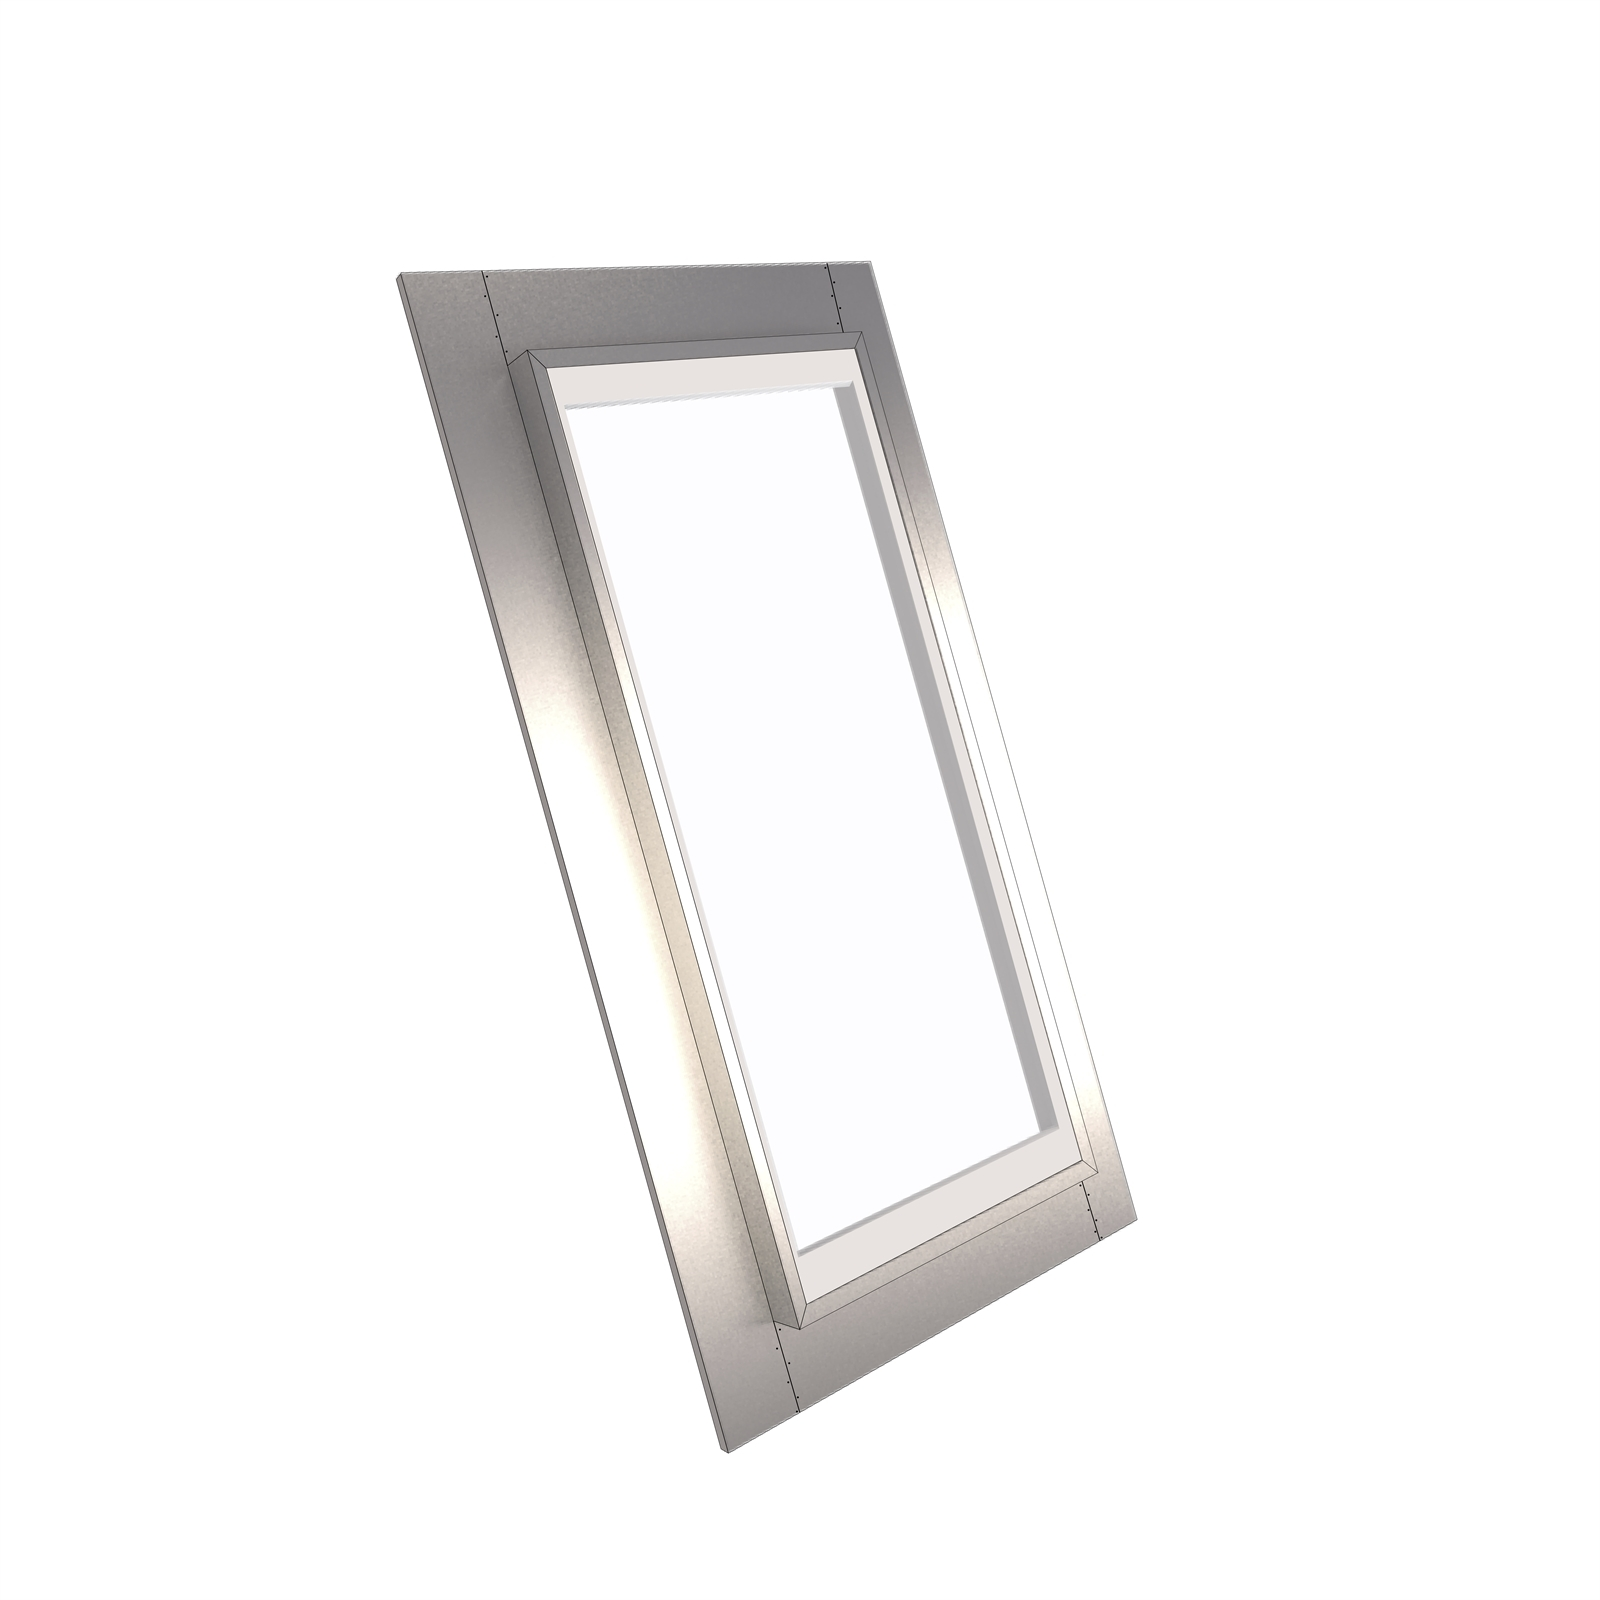 EzyLite 1000 x 550mm Fixed Roof Window For Corrugated Roof - Smart Glass